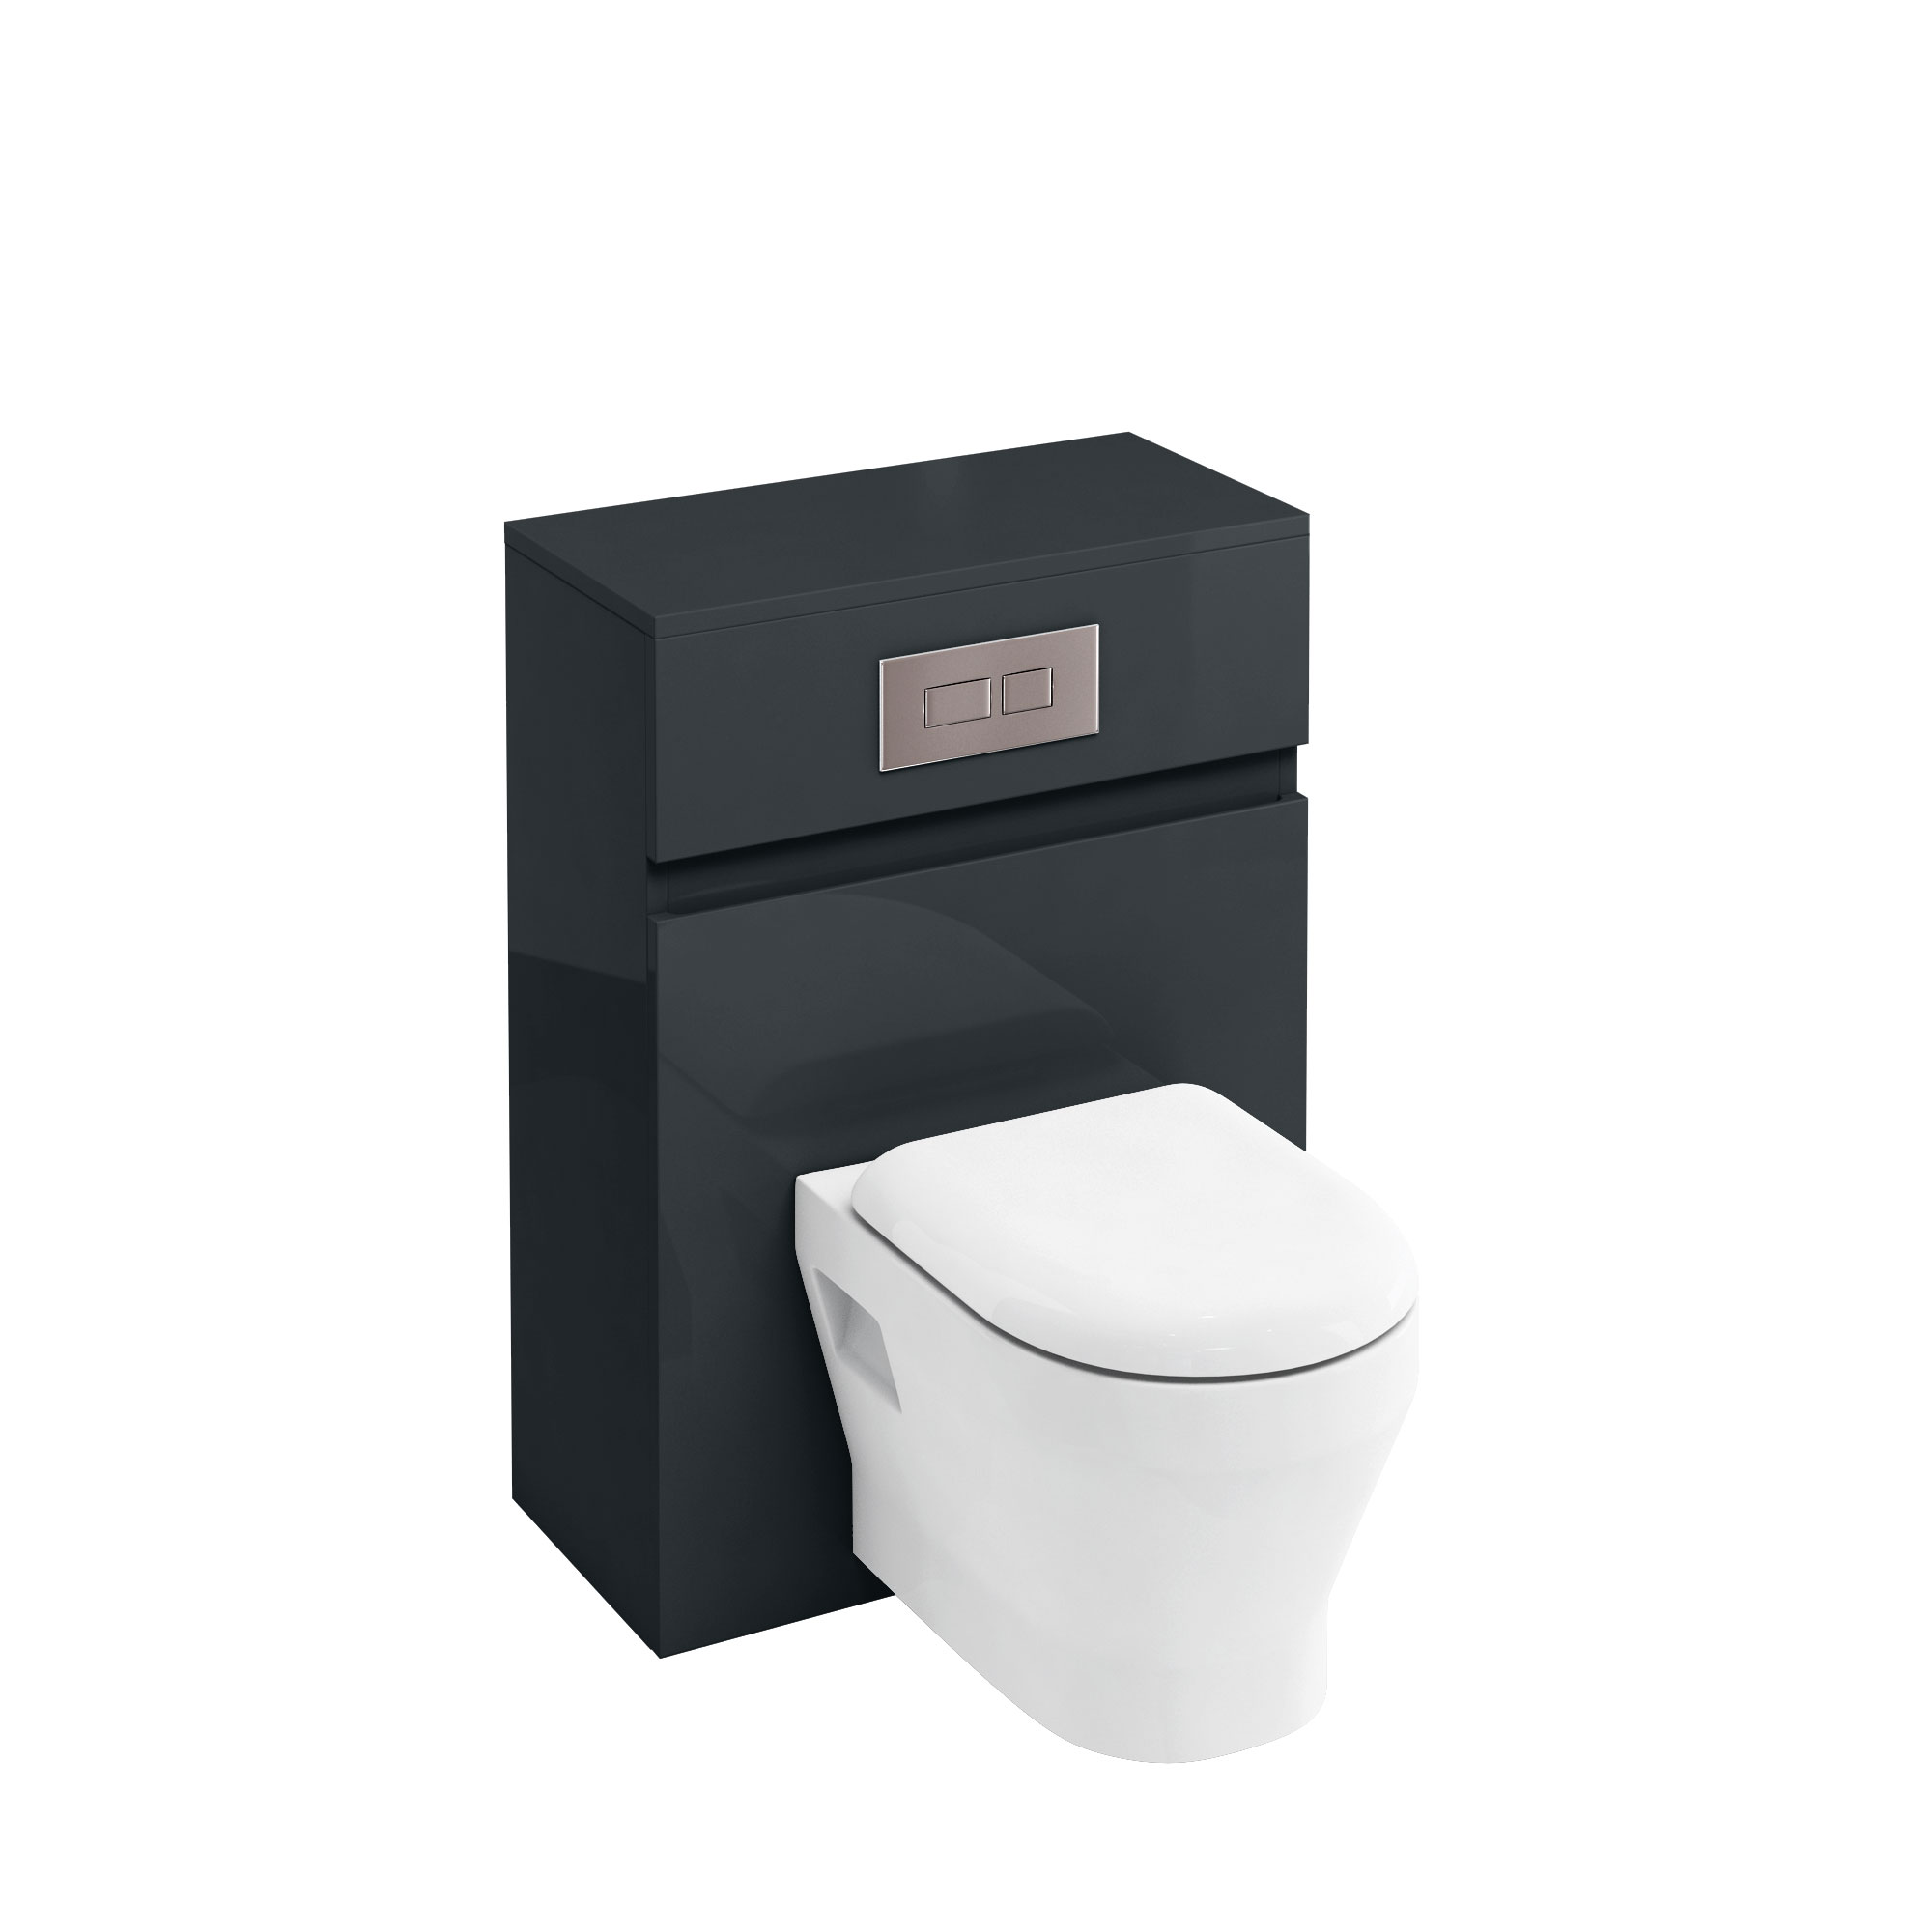 click on WC Unit with Flush Plate for Wall Hung WC image to enlarge